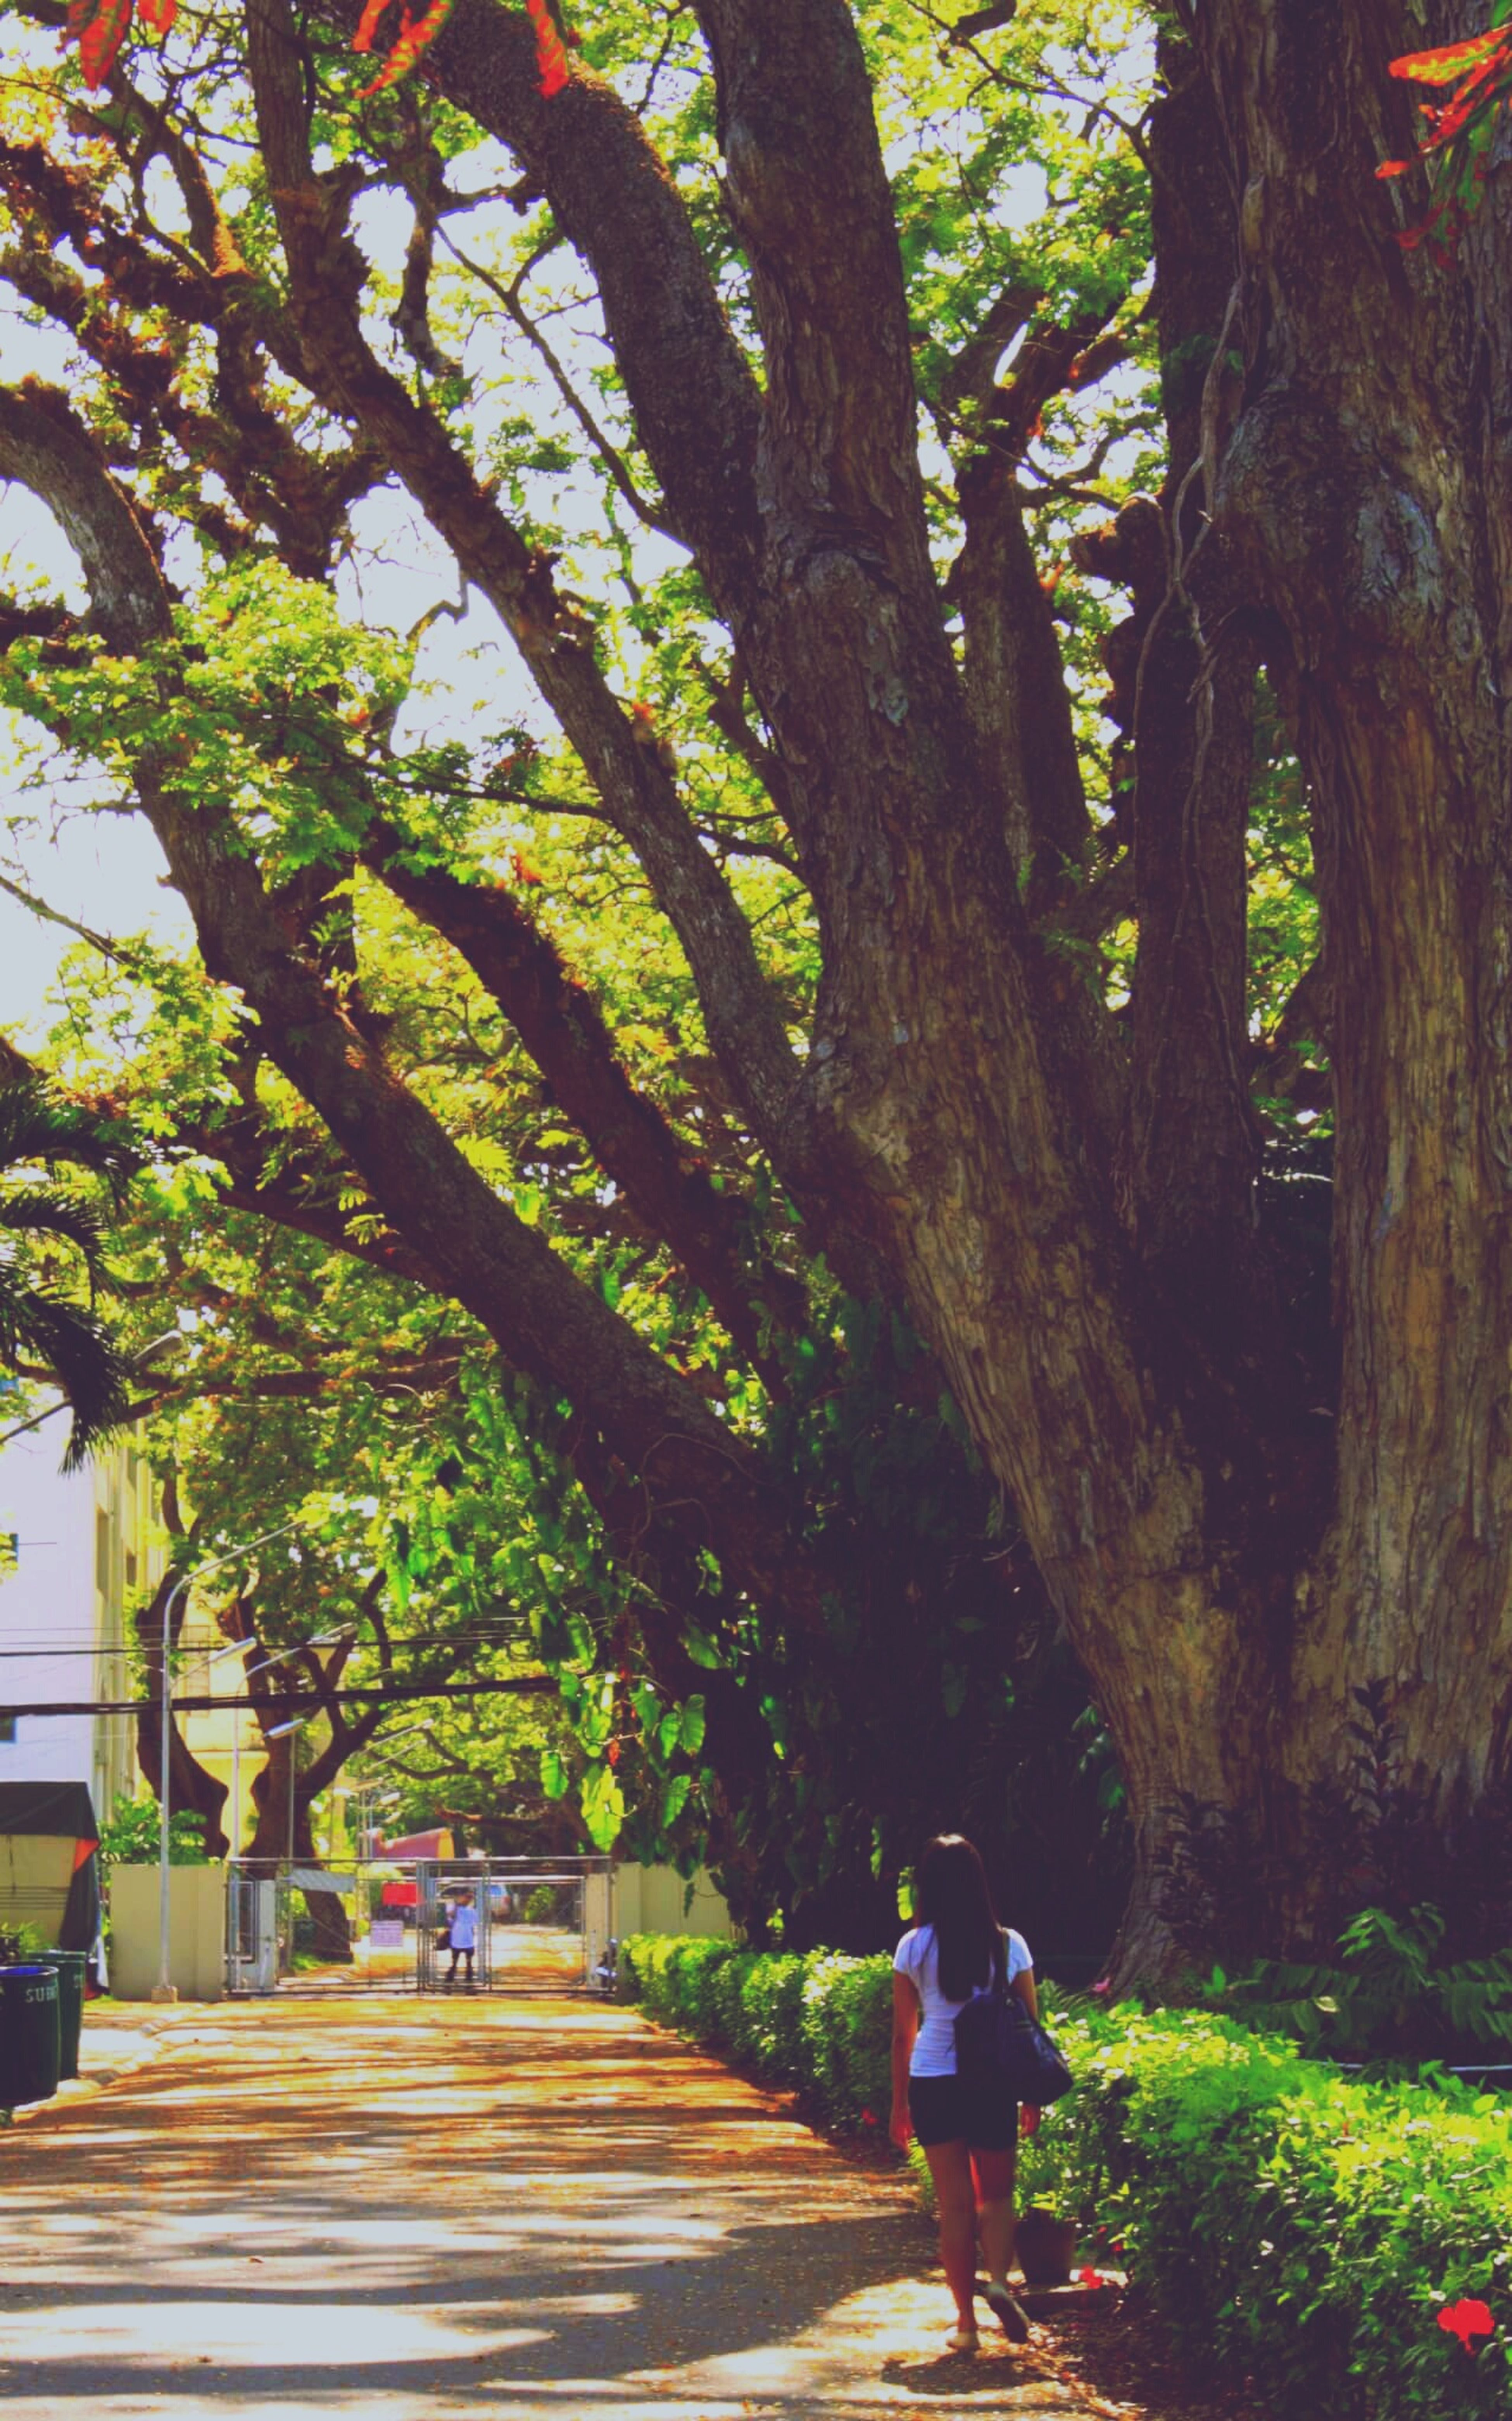 Onehundred 100 Acacia Trees Giants SillimanUniversity Silent Giants Time Capsule Living History Branches Dumaguete Open Edit